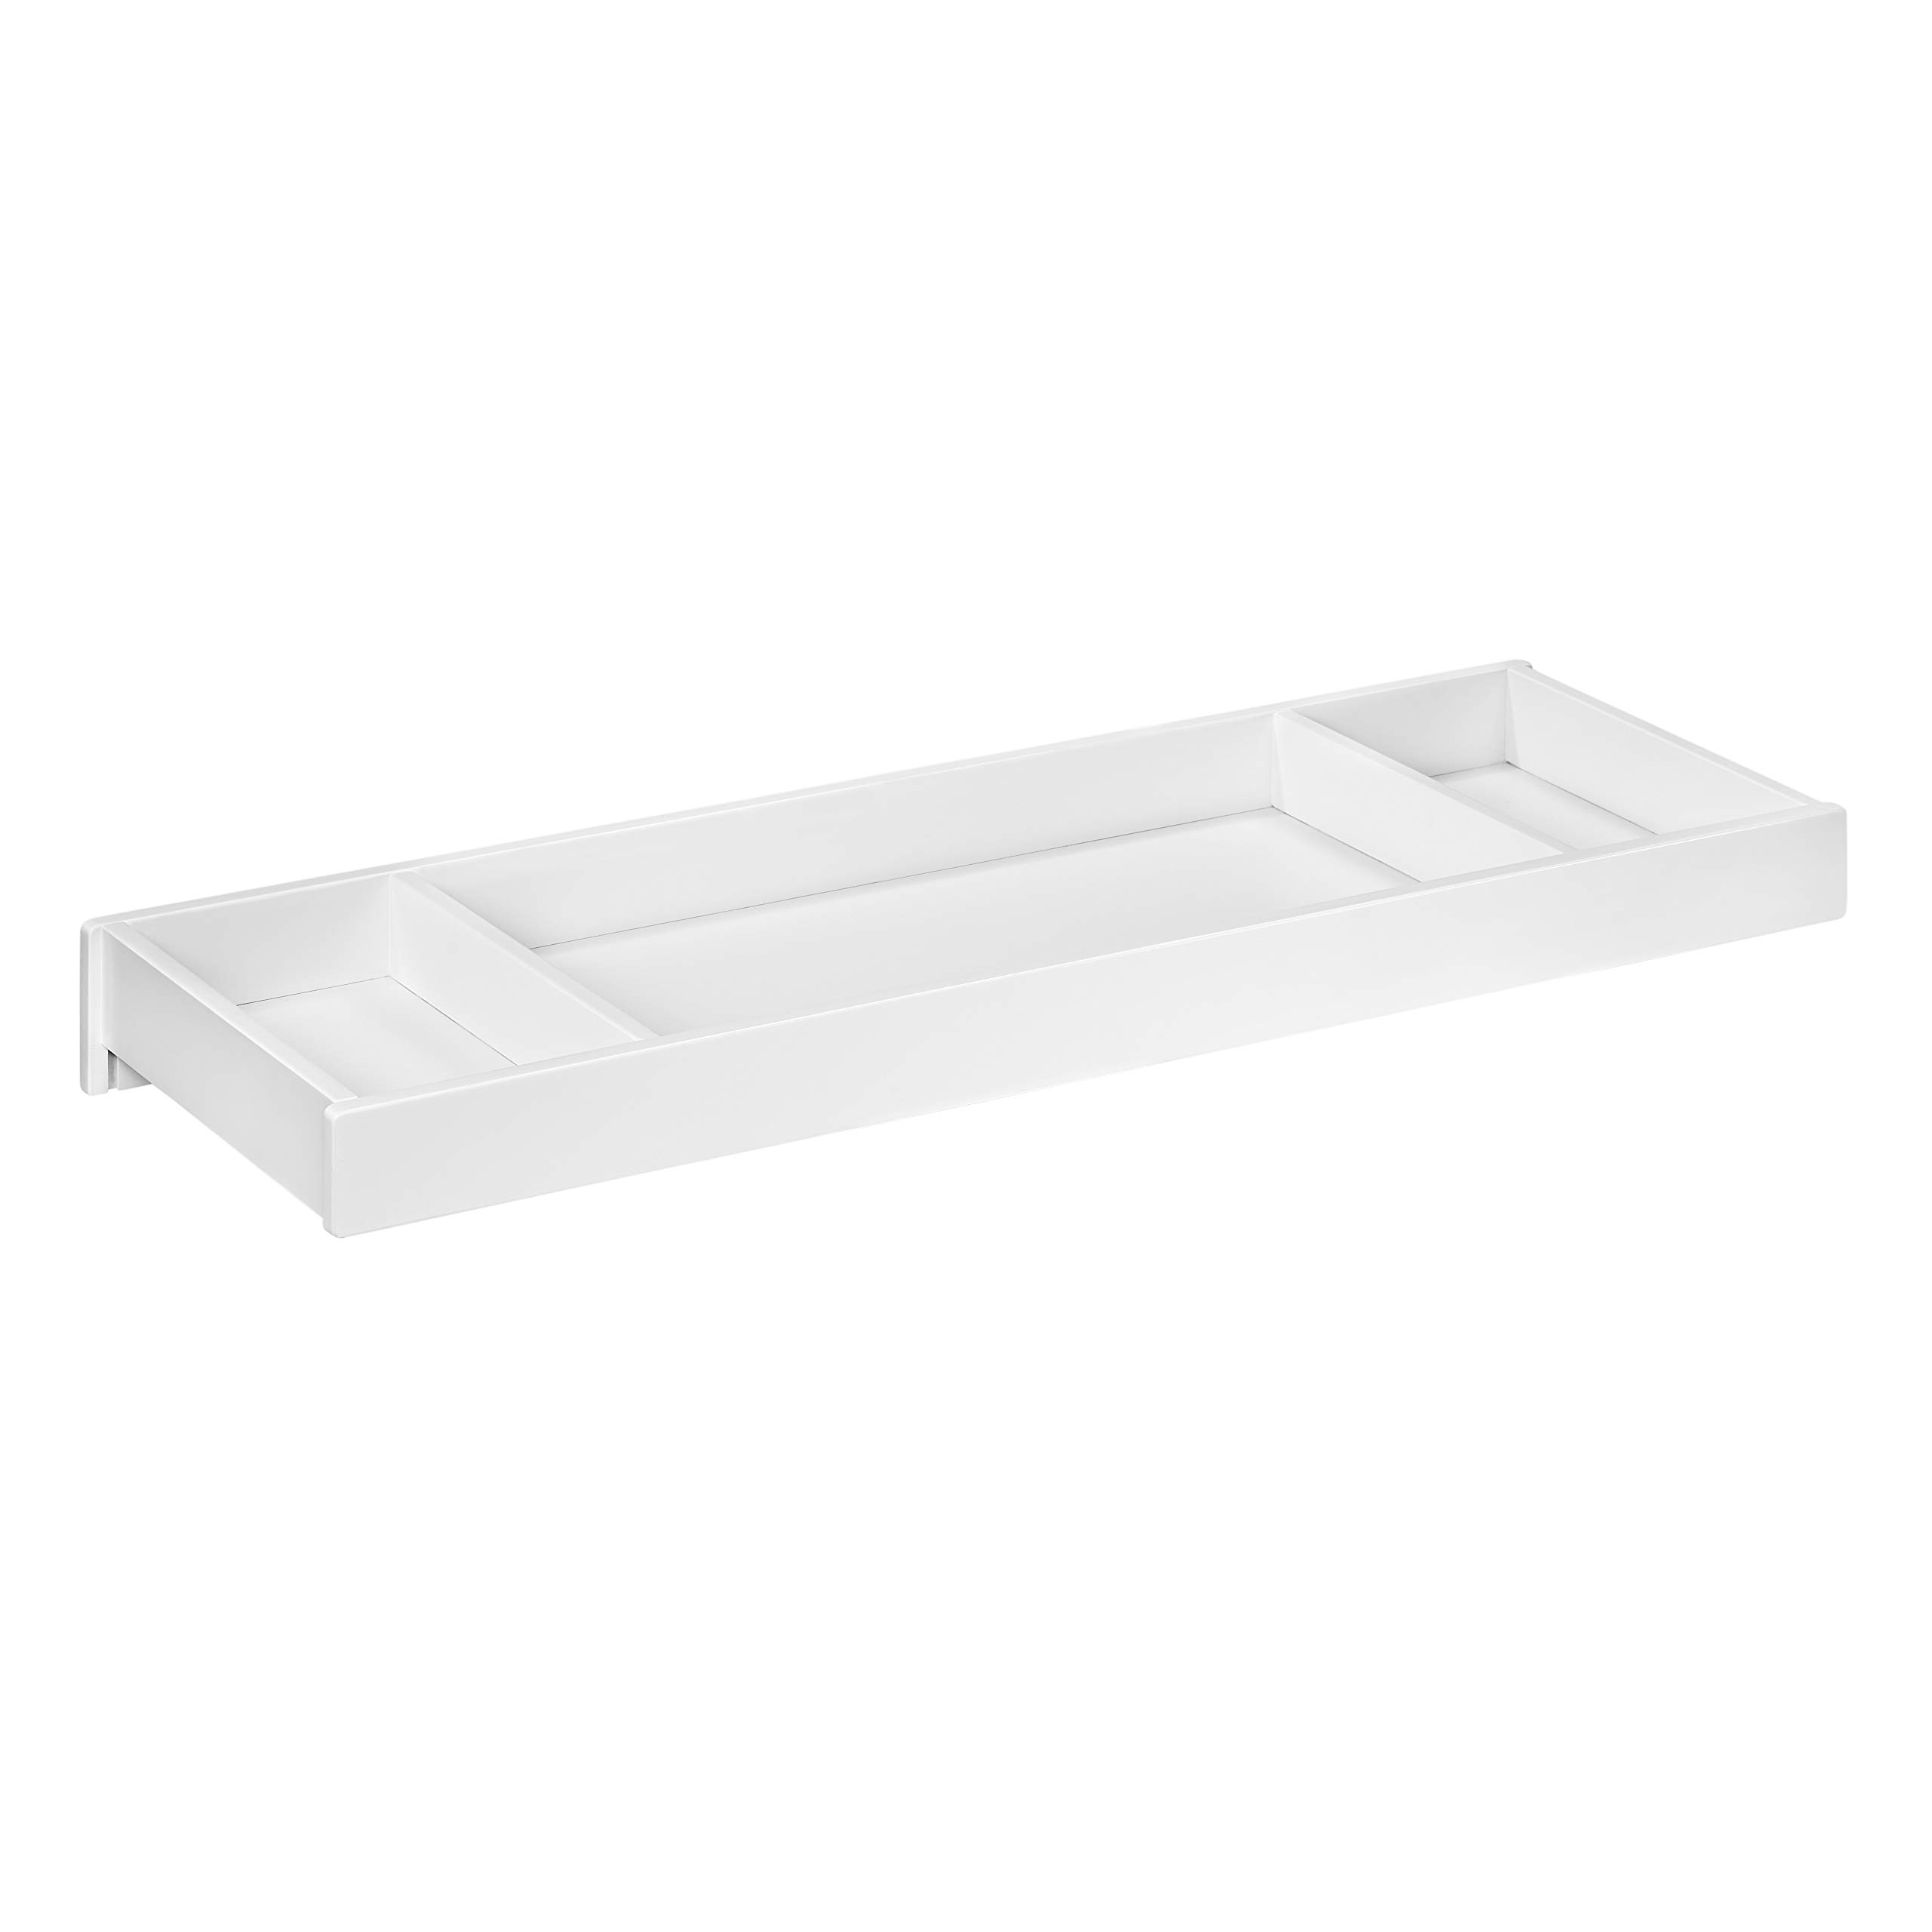 Oxford Baby 10165420 Stone Haven Changing Topper, White